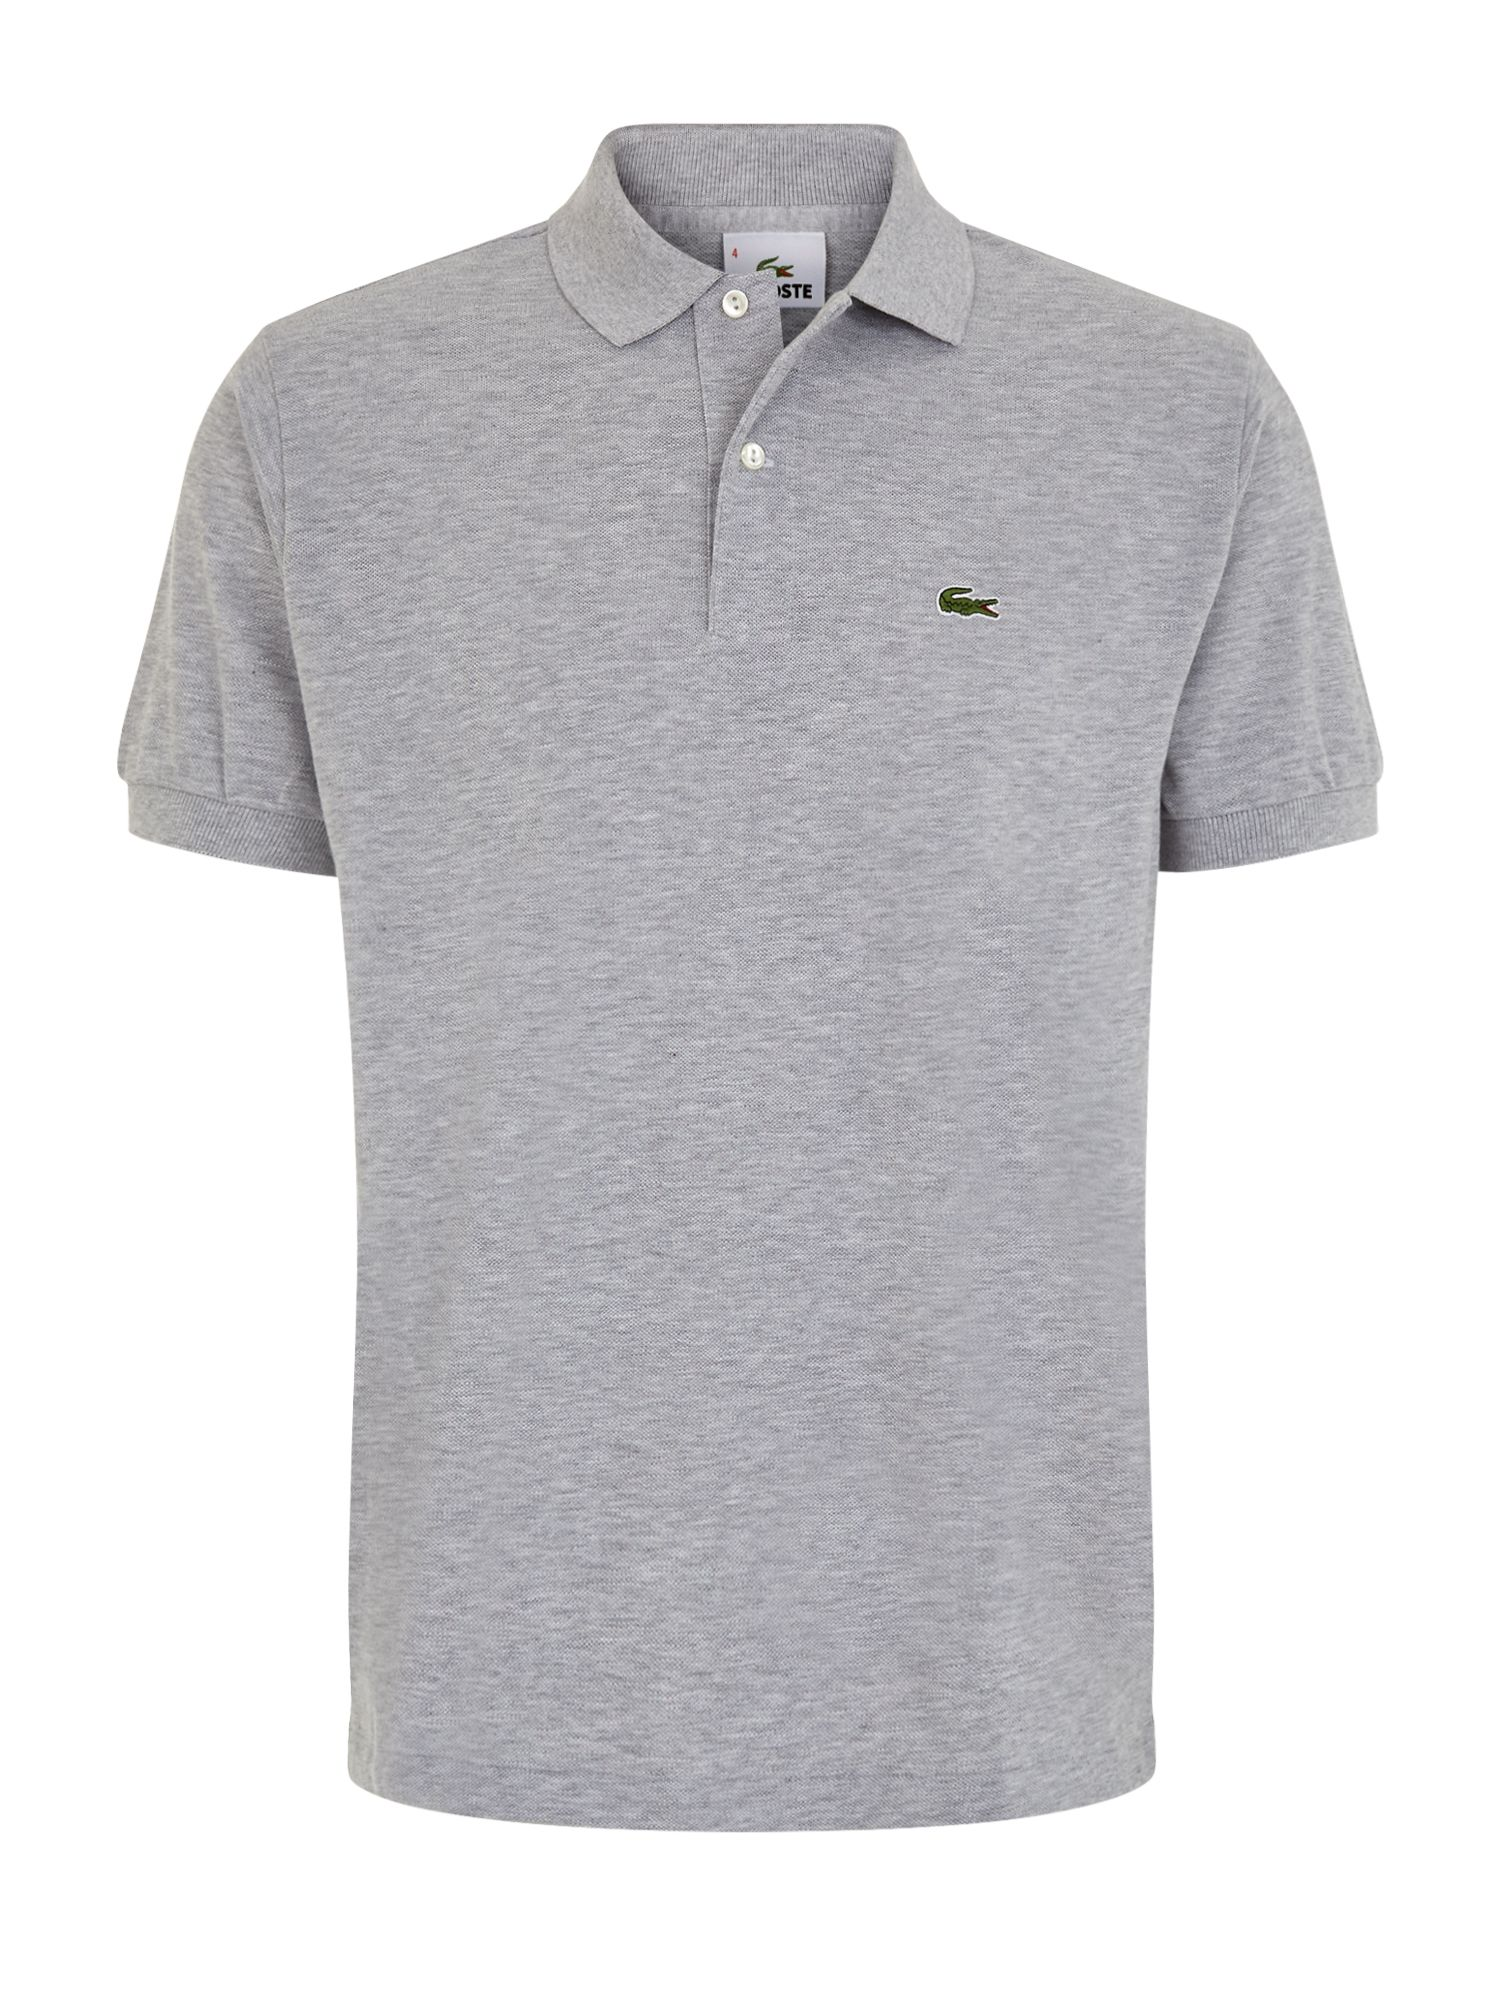 Men's Lacoste Marl l.12.12 original polo, Grey